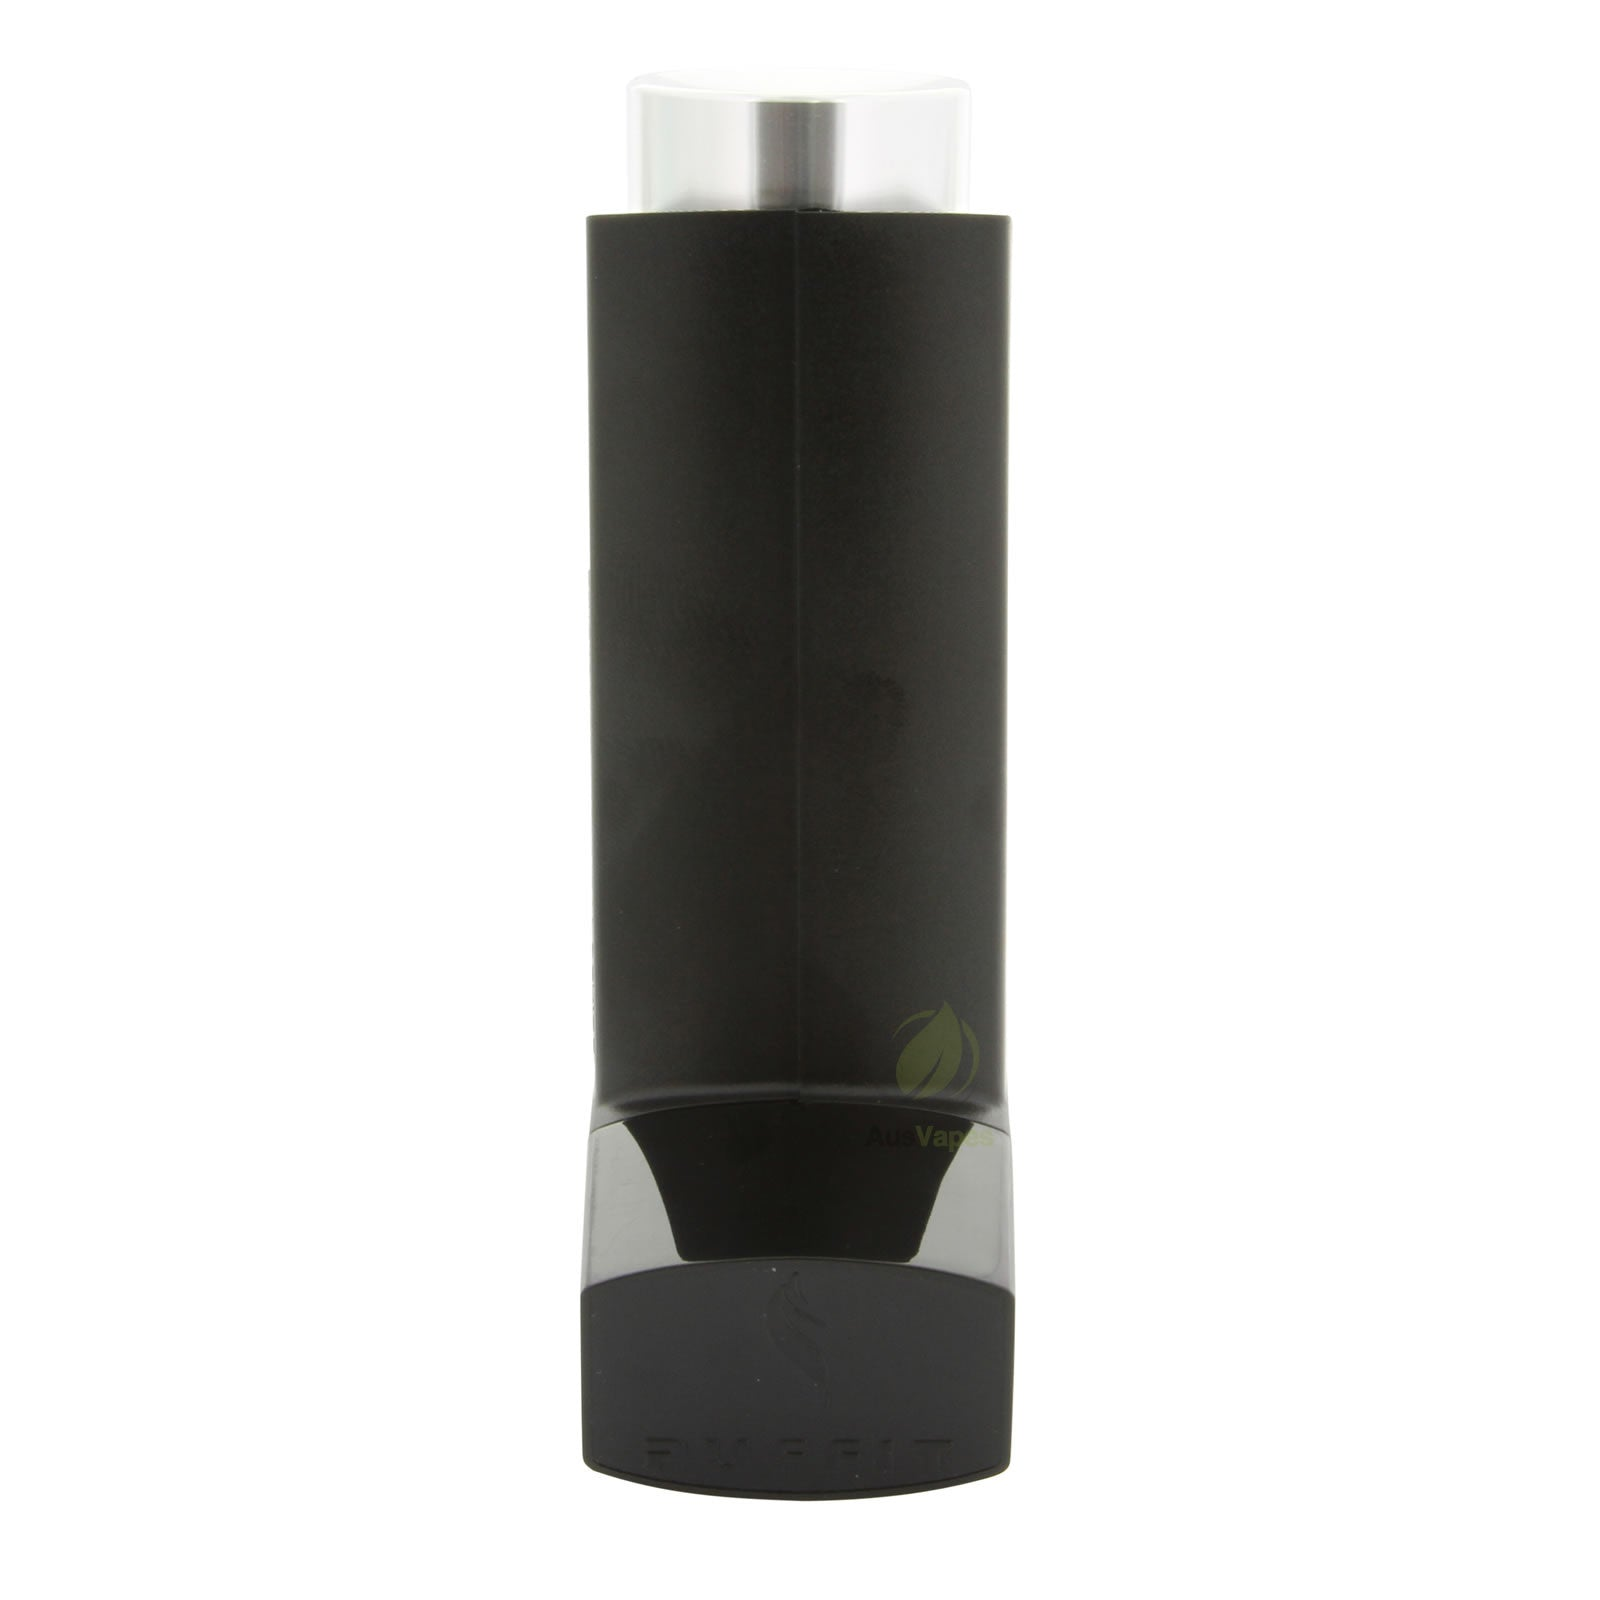 DISCONTINUED Puffit Vaporizer